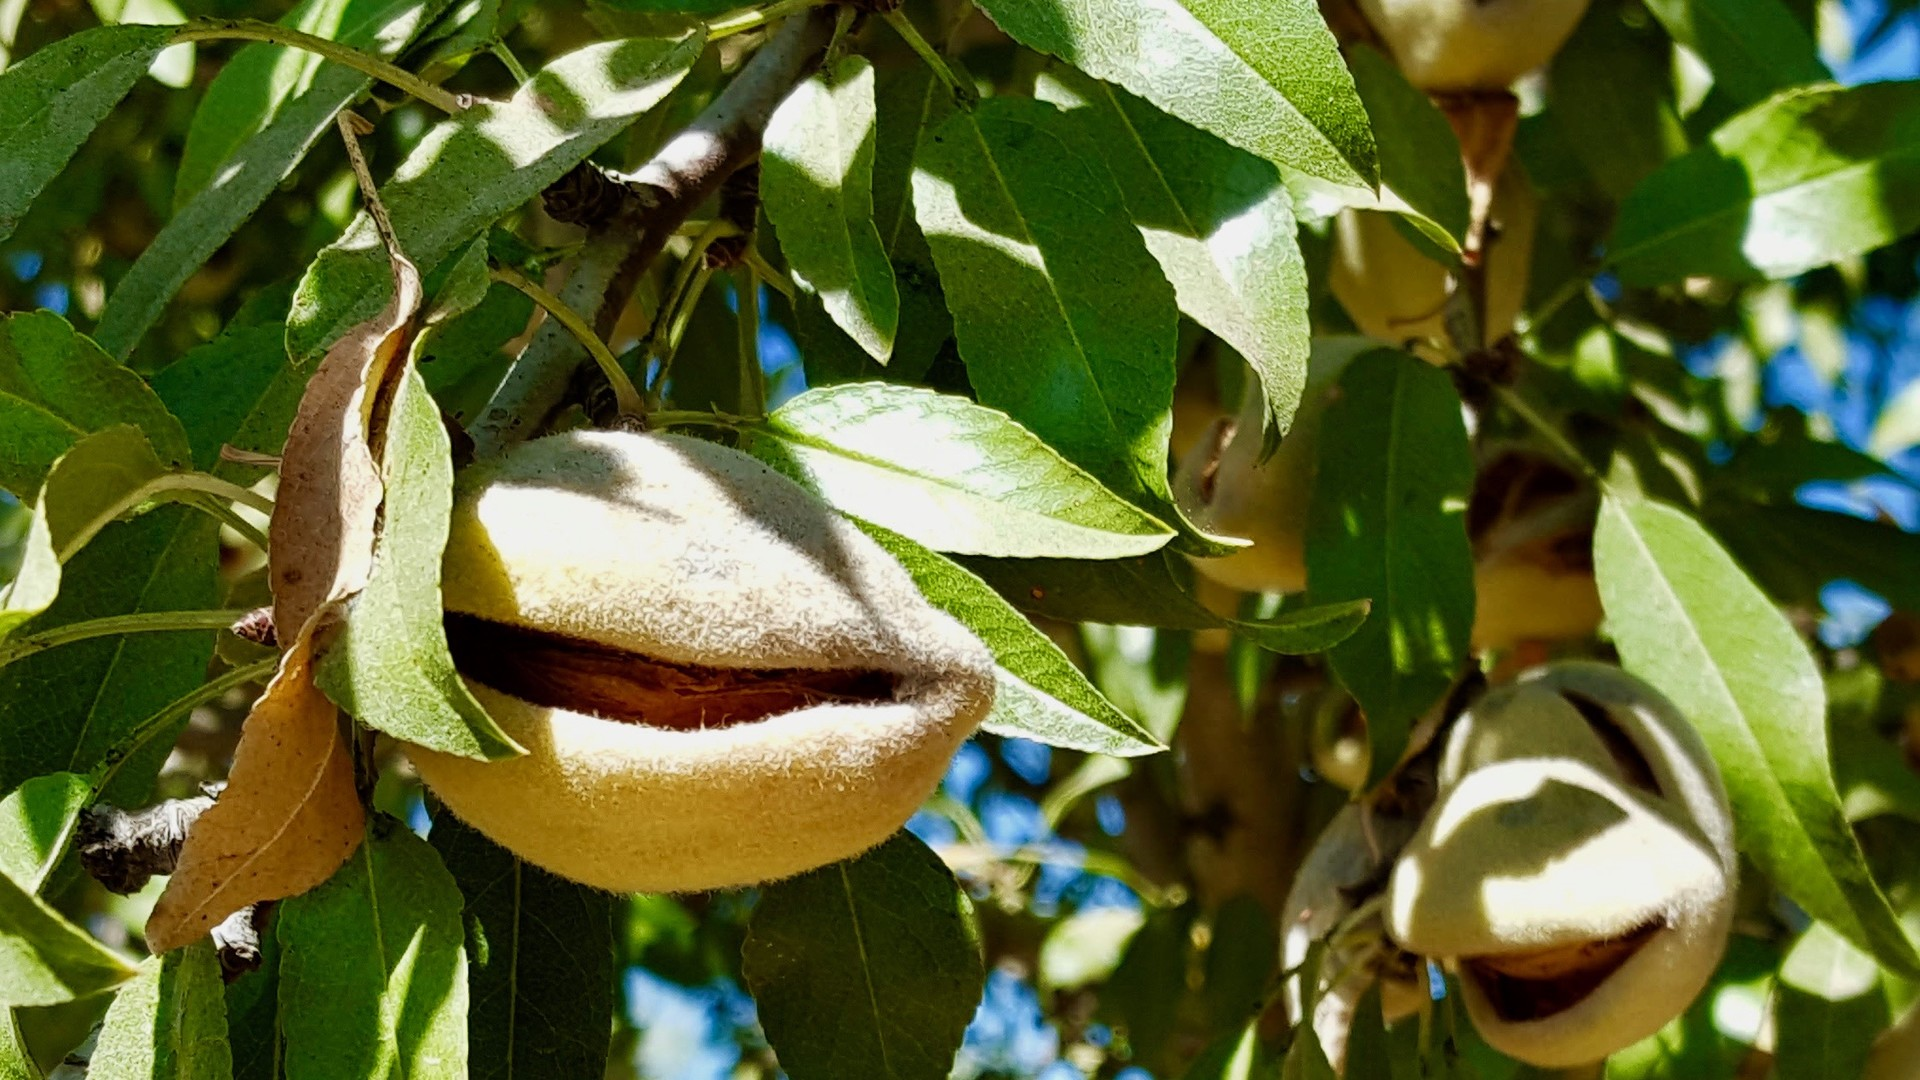 The California Almond Sustainability Program Helps Buyers Understand the Almond Industry Better when it Comes to Sustainably Growing the Crop